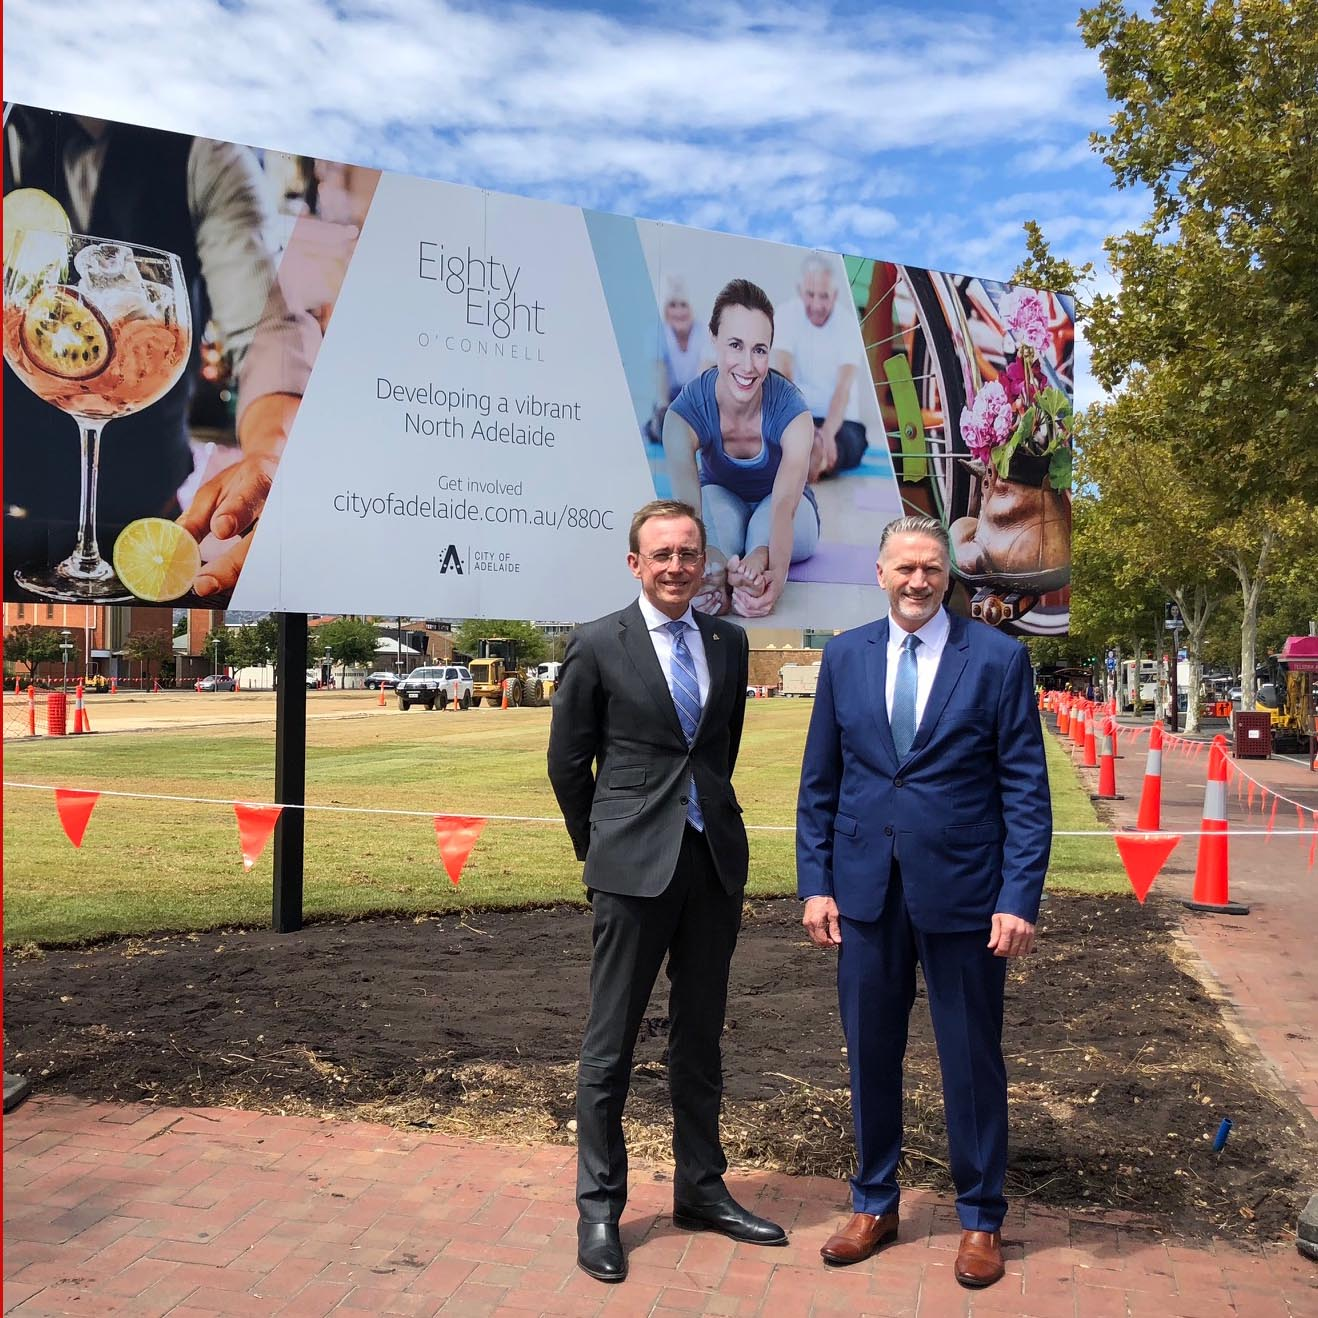 Lord Mayor Martin Haese with Adelaide City Council CEO Mark Goldstone at the former LeCornus site 88 O'Connell Street North Adelaide